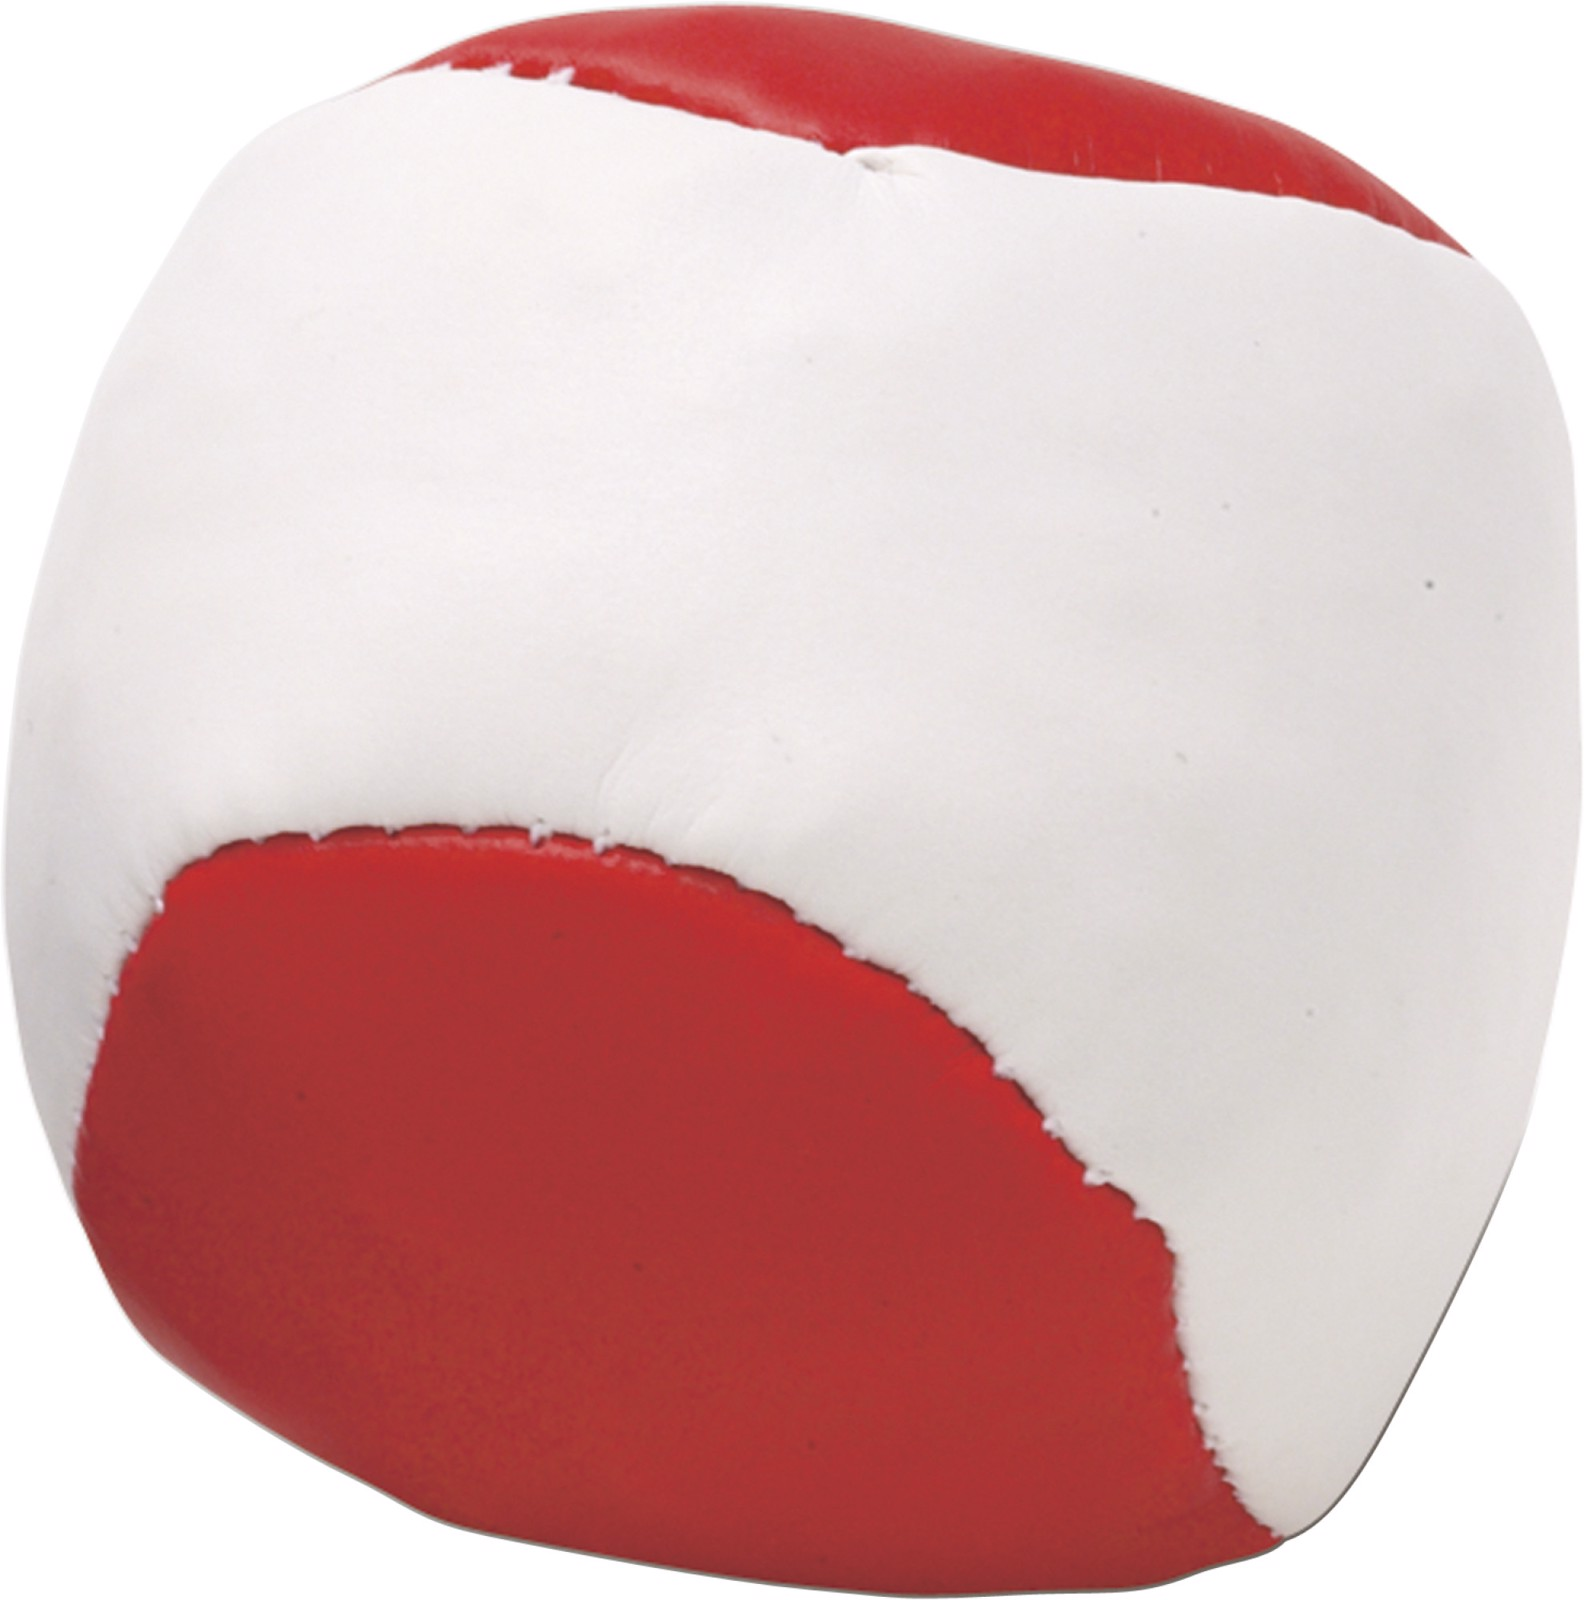 Imitation leather juggling ball - Red